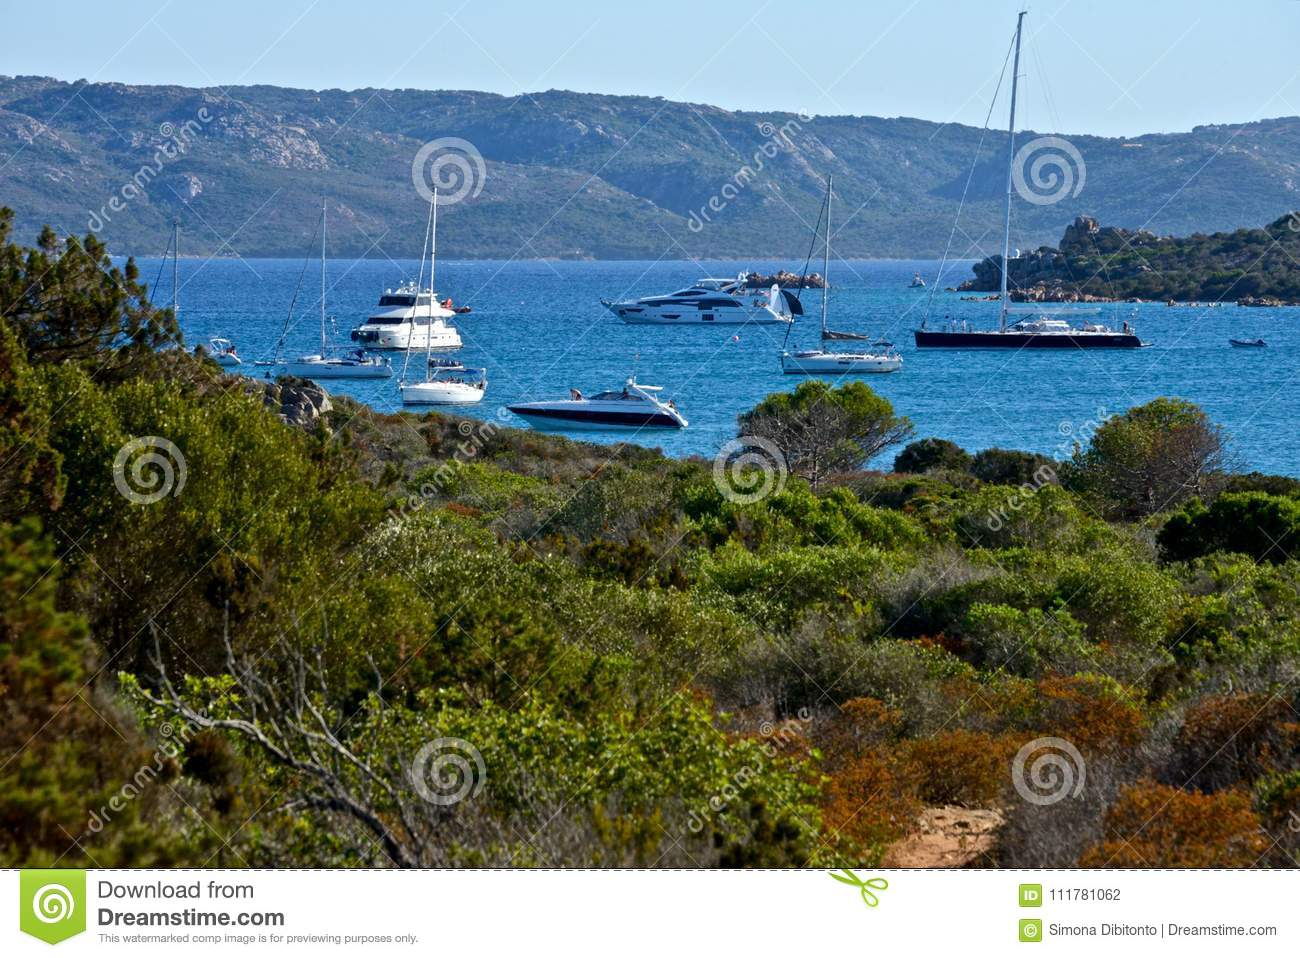 Landscape of wild nature with some yachts moored in the middle of the sea